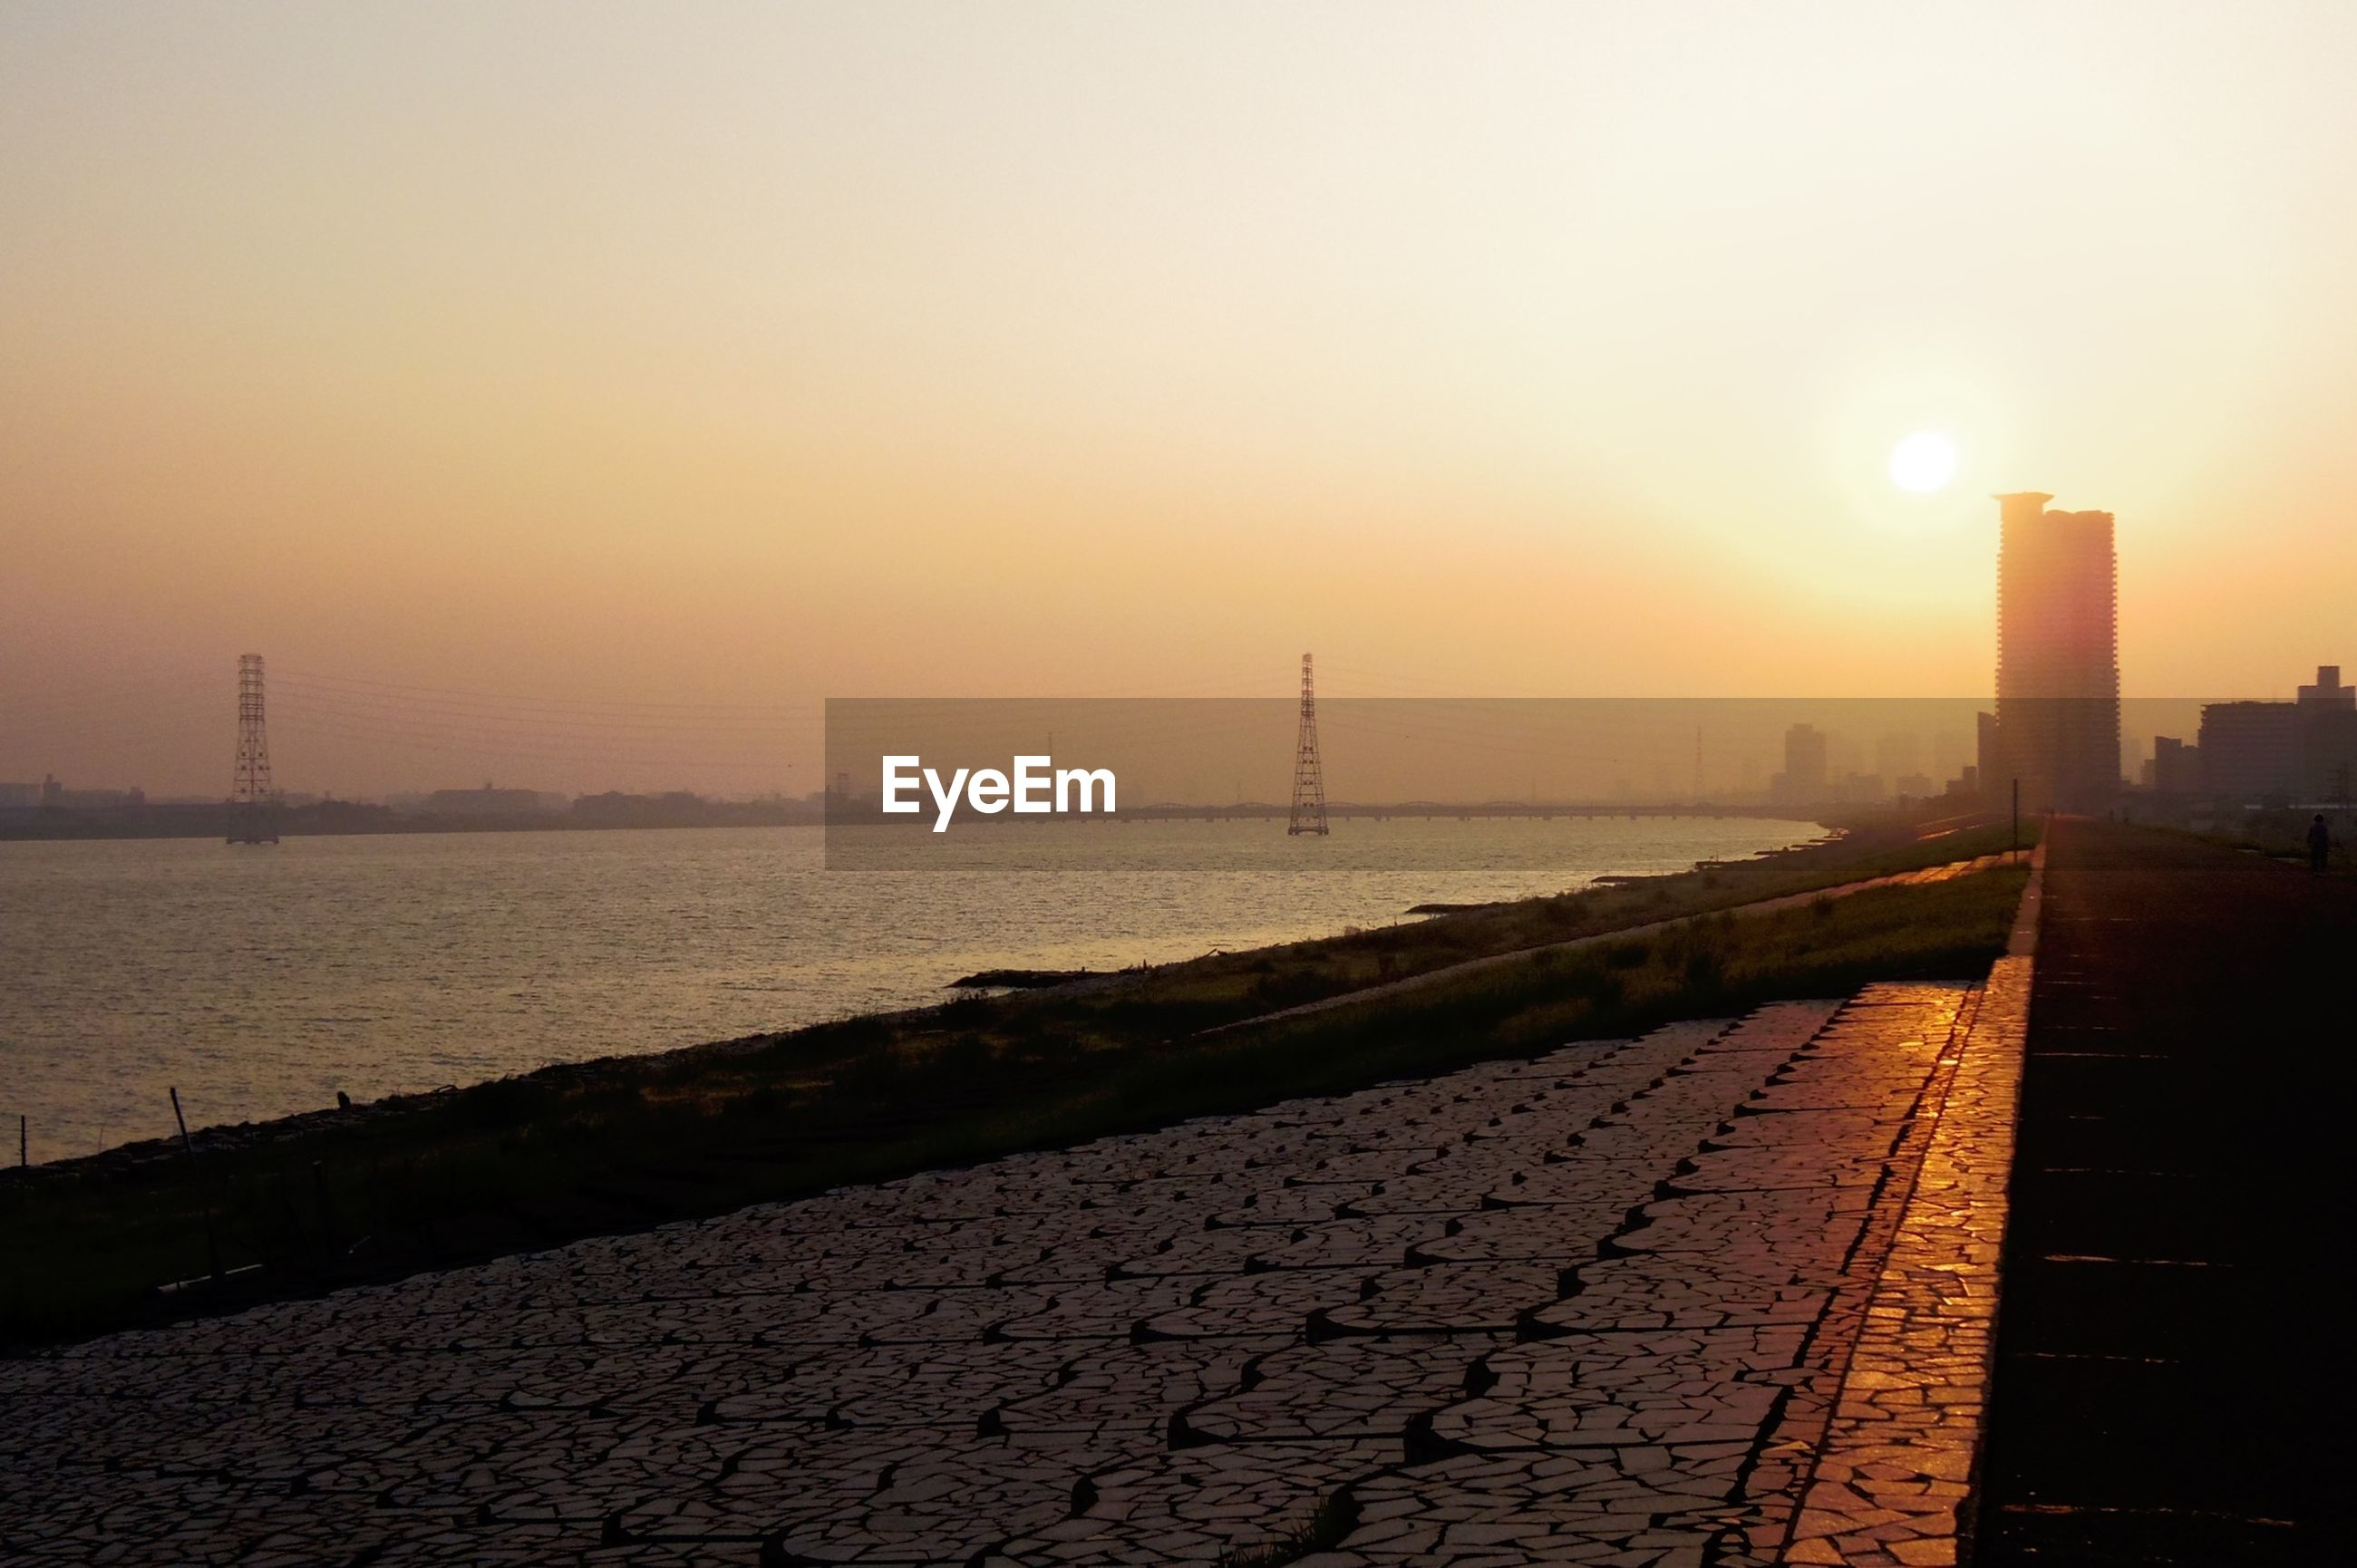 sunset, water, sea, sky, sun, tranquility, scenics, built structure, tranquil scene, silhouette, nature, orange color, beauty in nature, sunlight, the way forward, architecture, idyllic, horizon over water, outdoors, connection